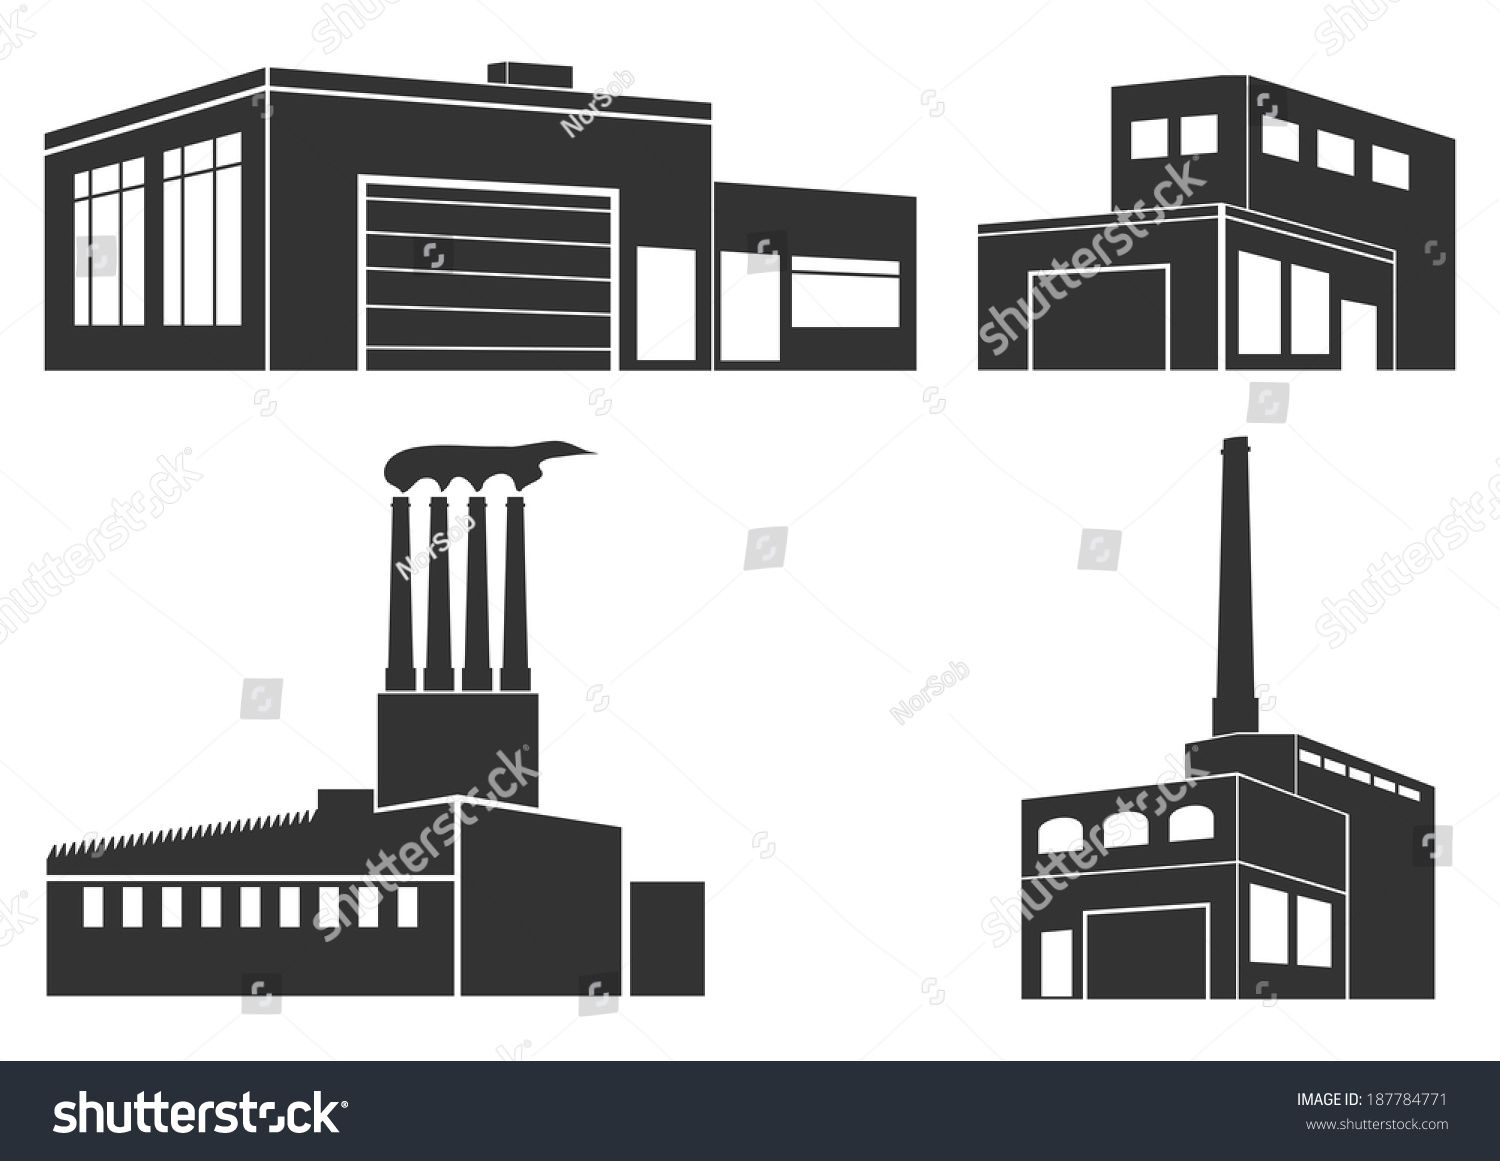 Set Of Silhouettes Of Industrial Buildings On A White Background